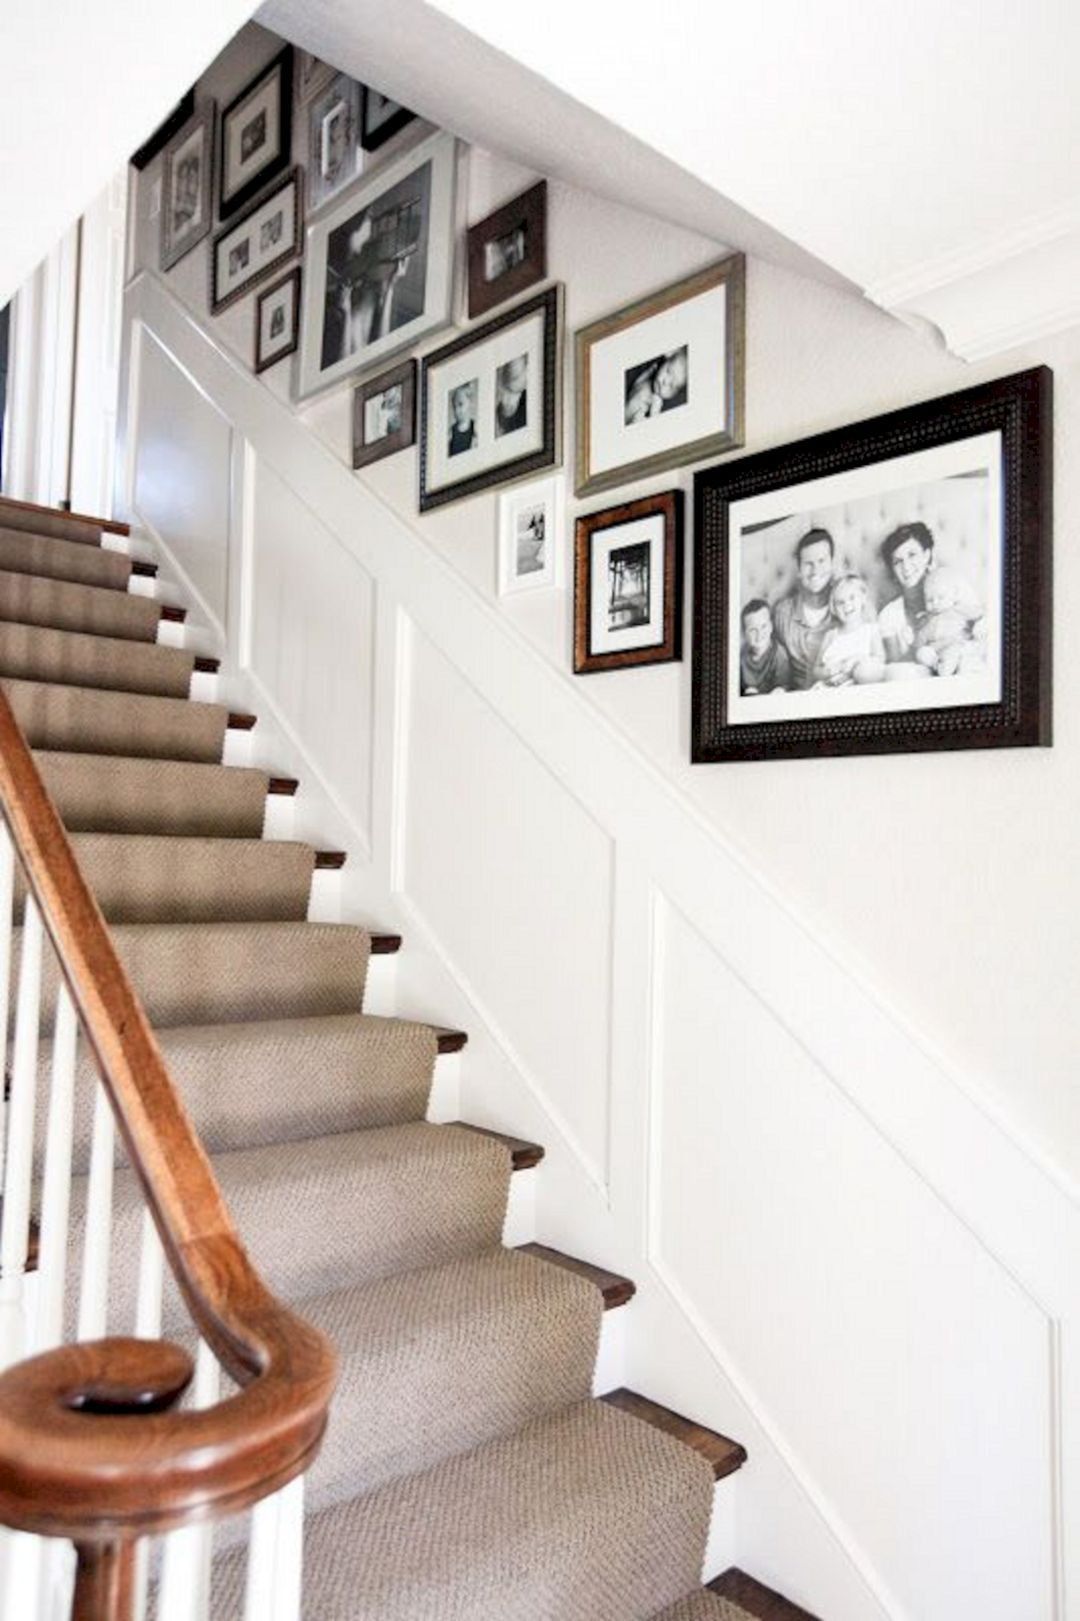 65 Awesome Arranging Pictures On A Stair Wall Ideas Freshouz